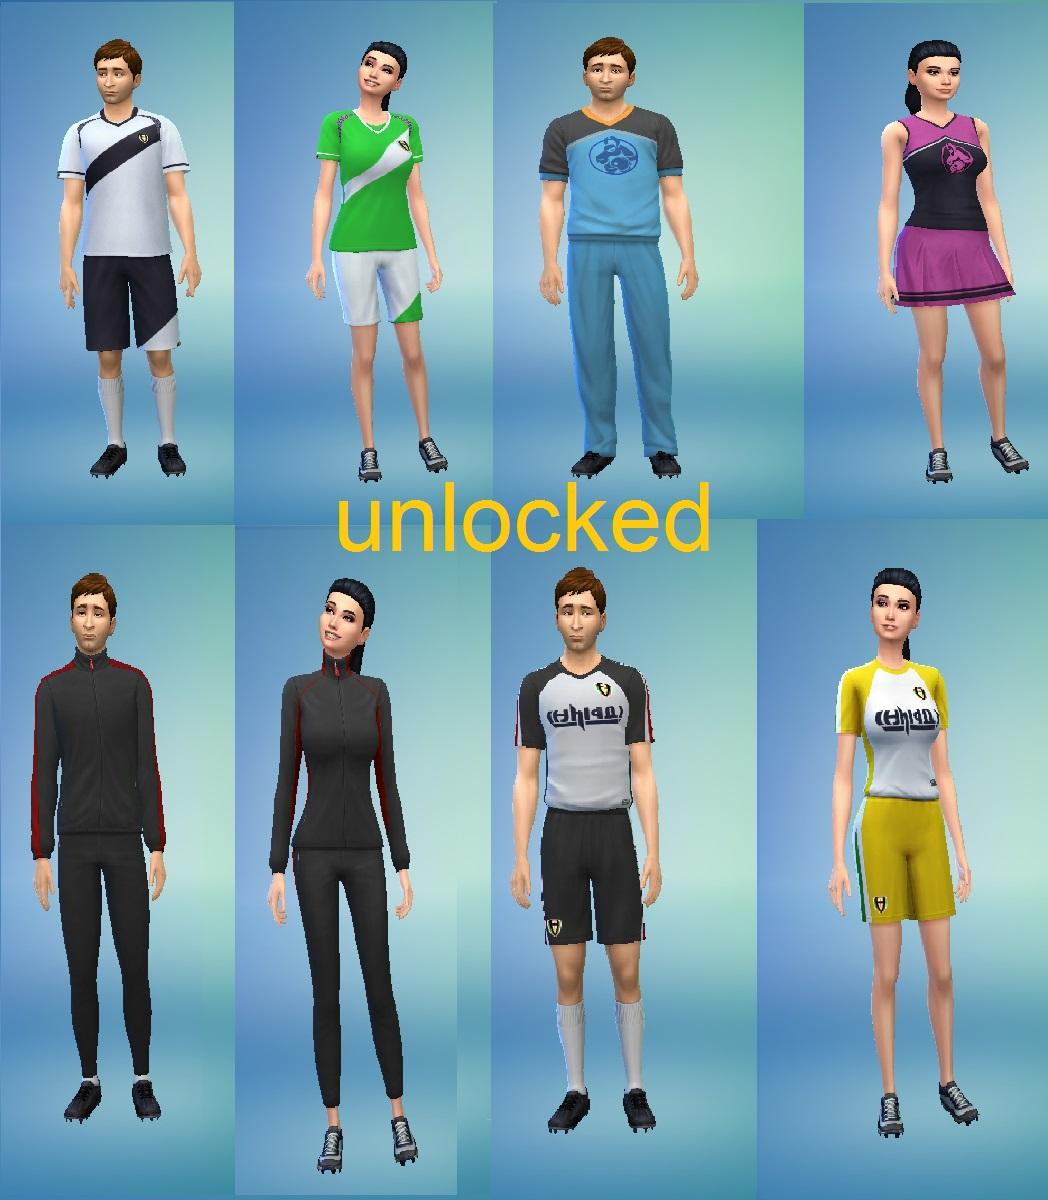 322aa38c29 Mod The Sims - athlete career clothes unlocked